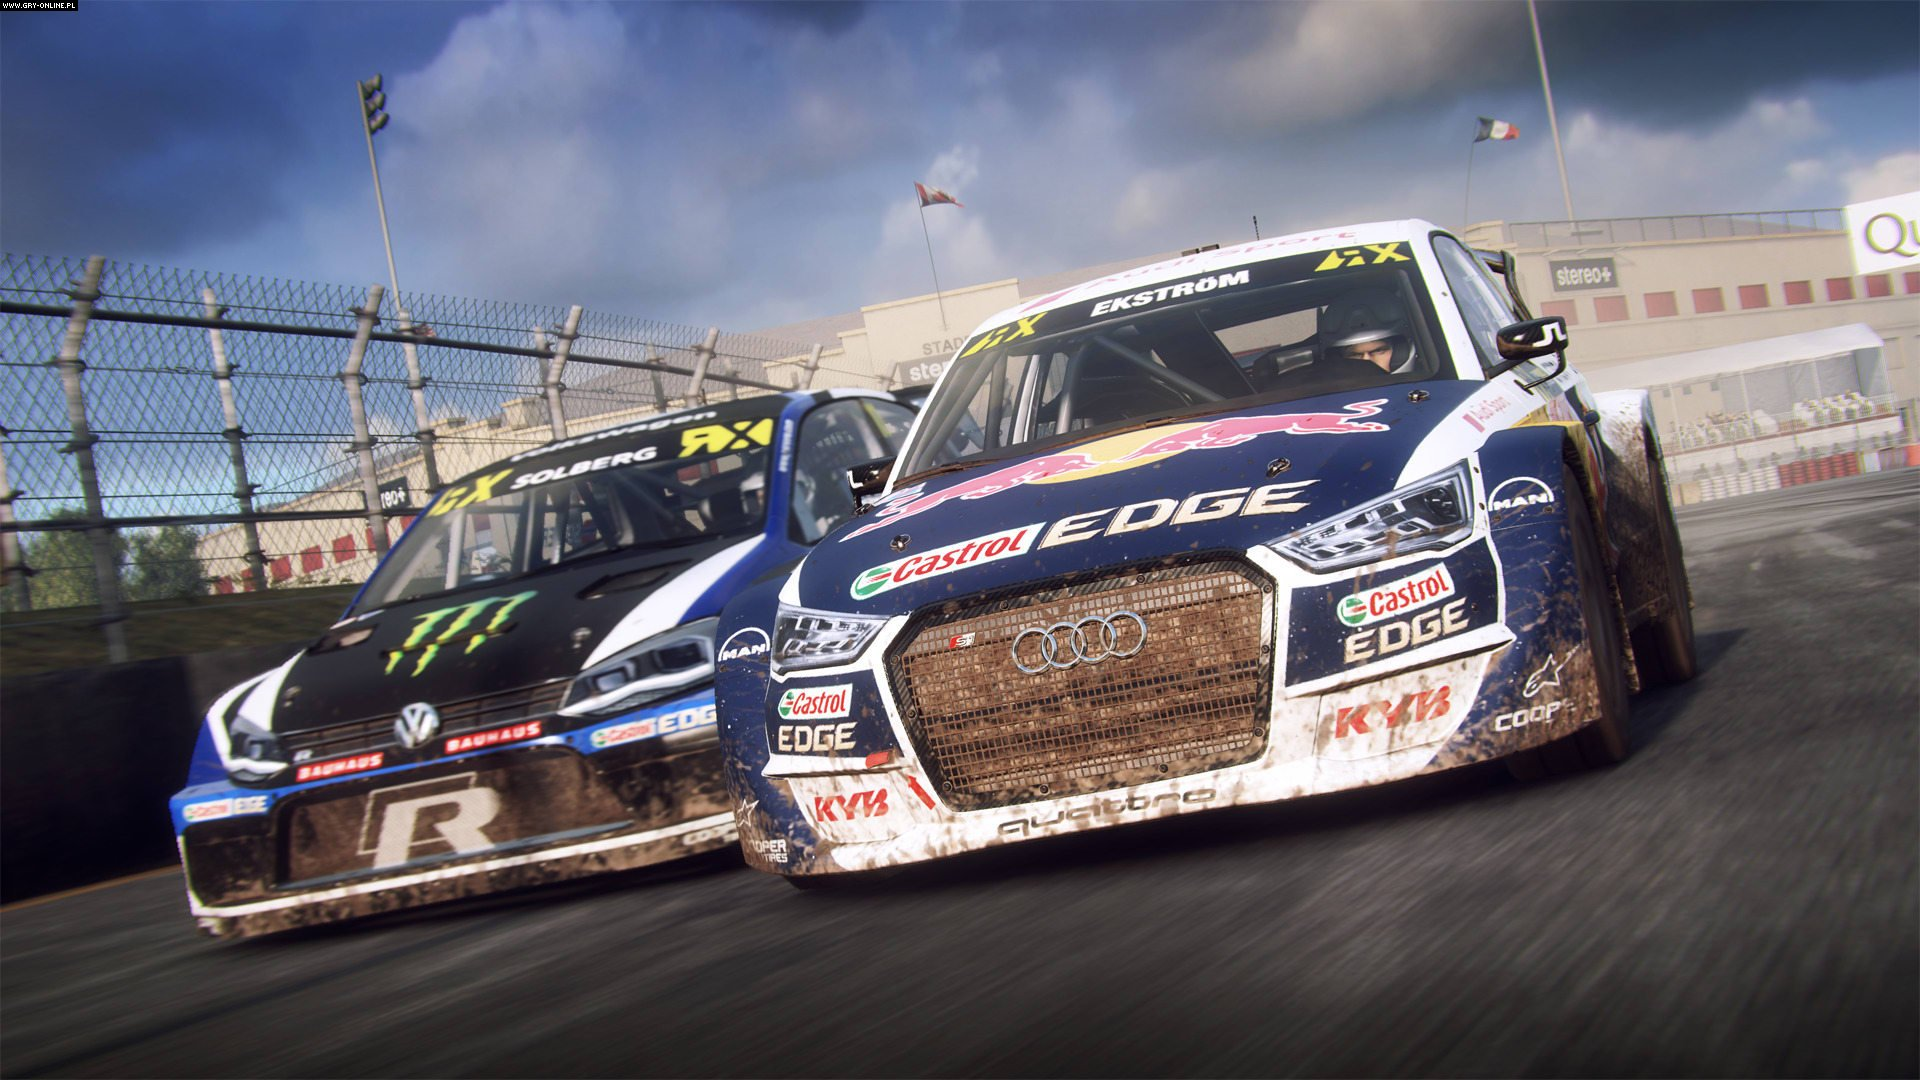 DiRT Rally 2.0 PC, PS4, XONE Games Image 17/21, Codemasters Software